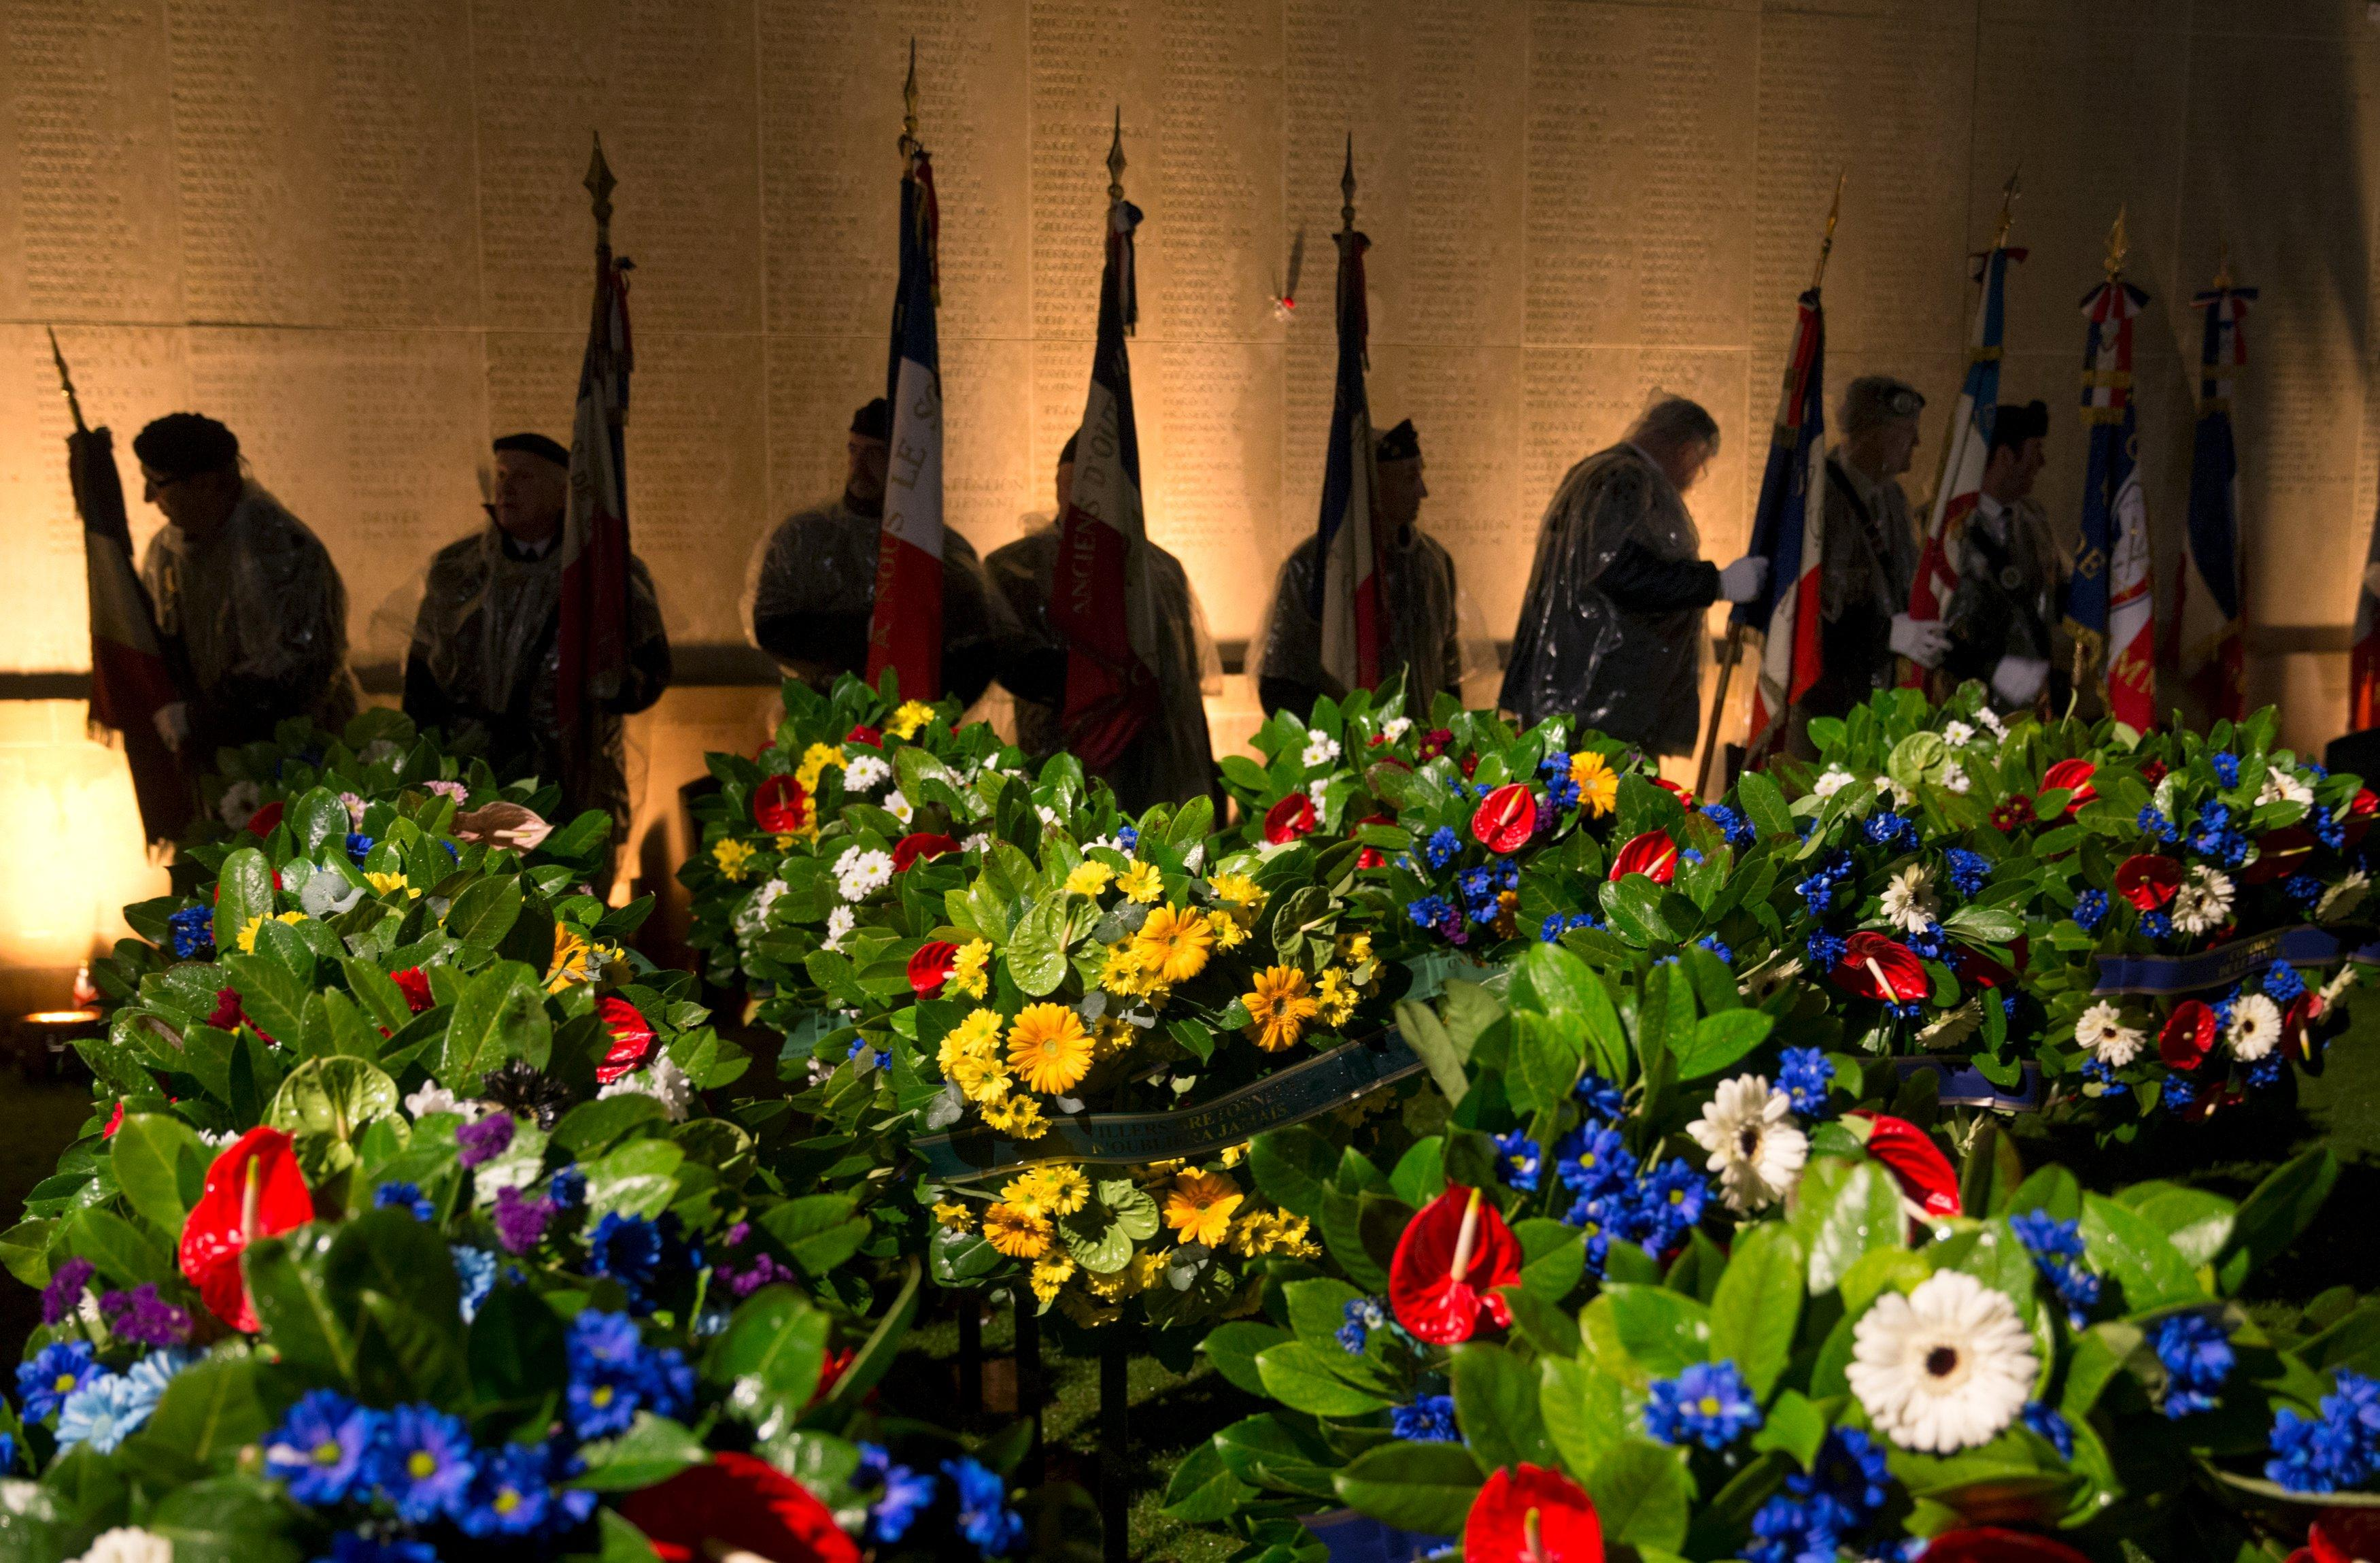 Soldiers honored on 100th year of Gallipoli battle